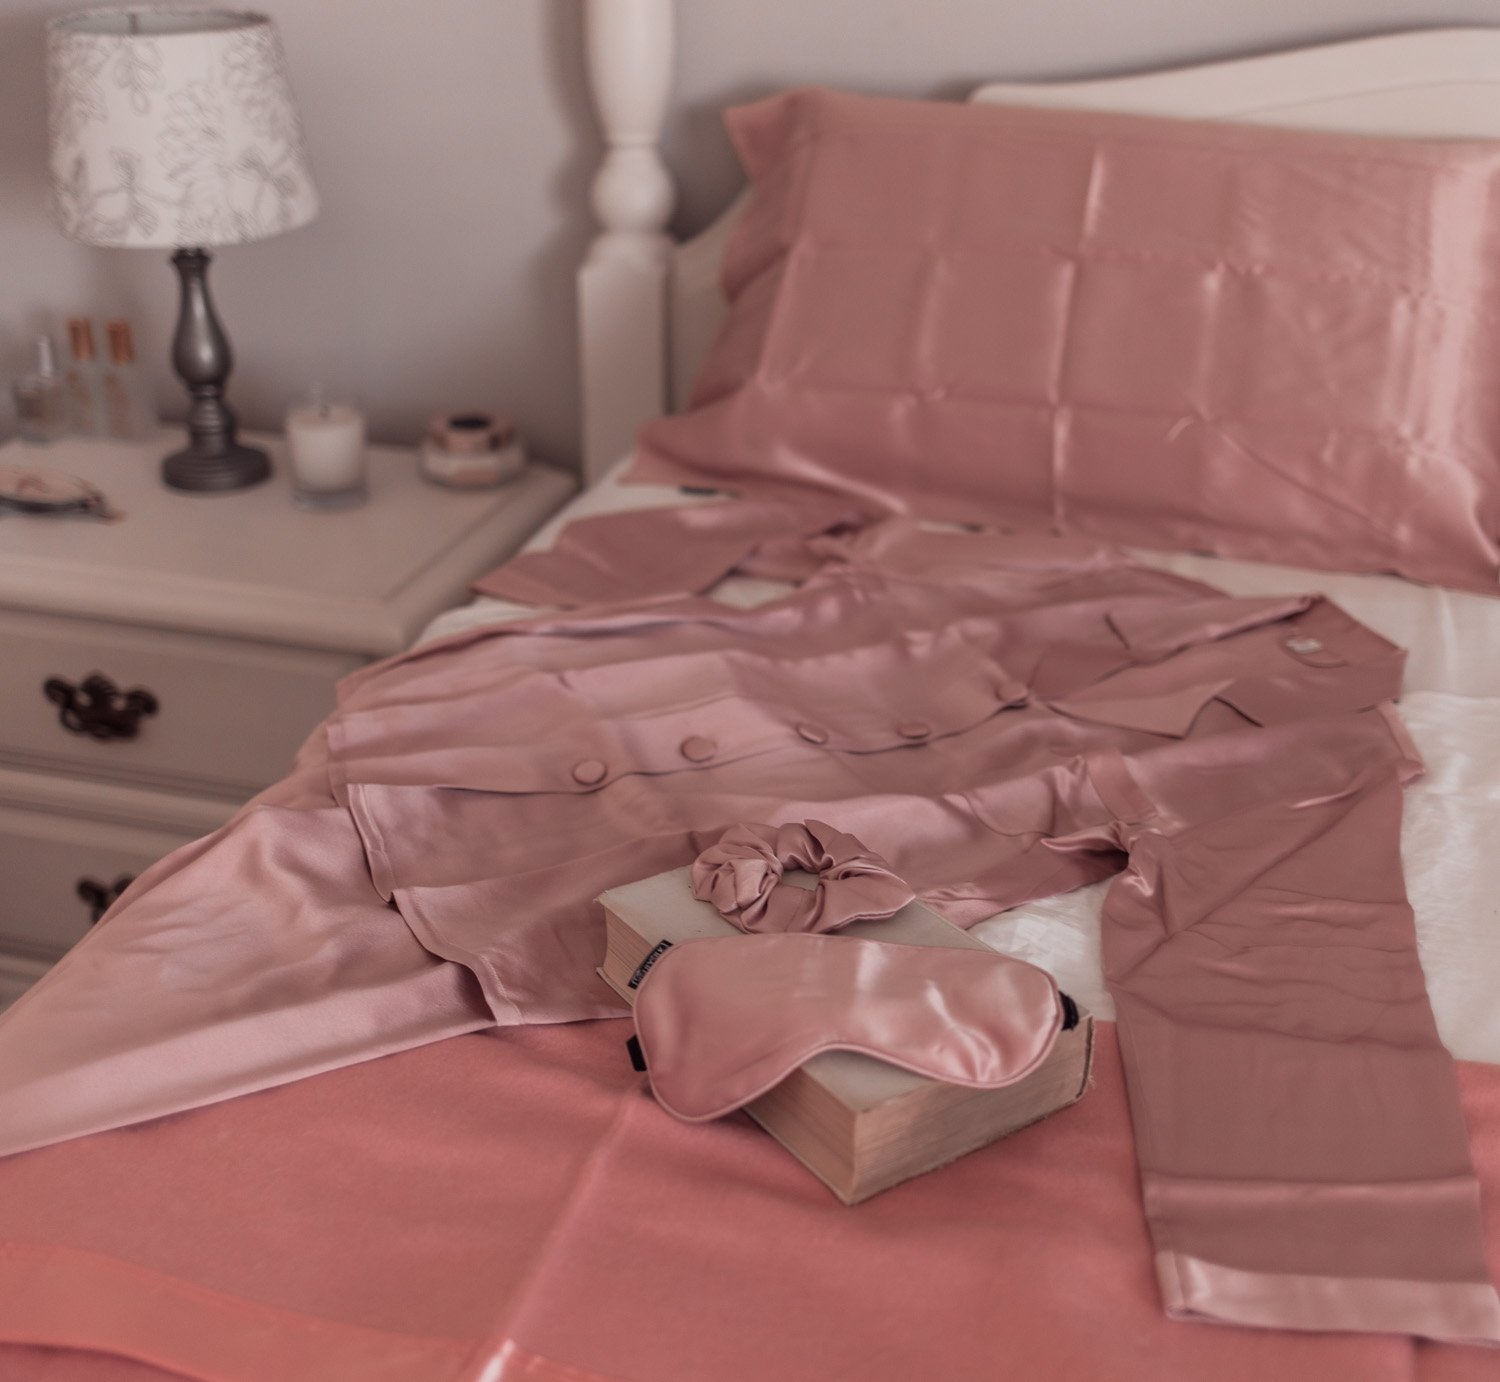 Feminine fashion blogger Elizabeth Hugen of Lizzie in Lace shares the Best Mother's Day gift ideas in her Mother's Day gift guide including these Lilysilk silk pajamas